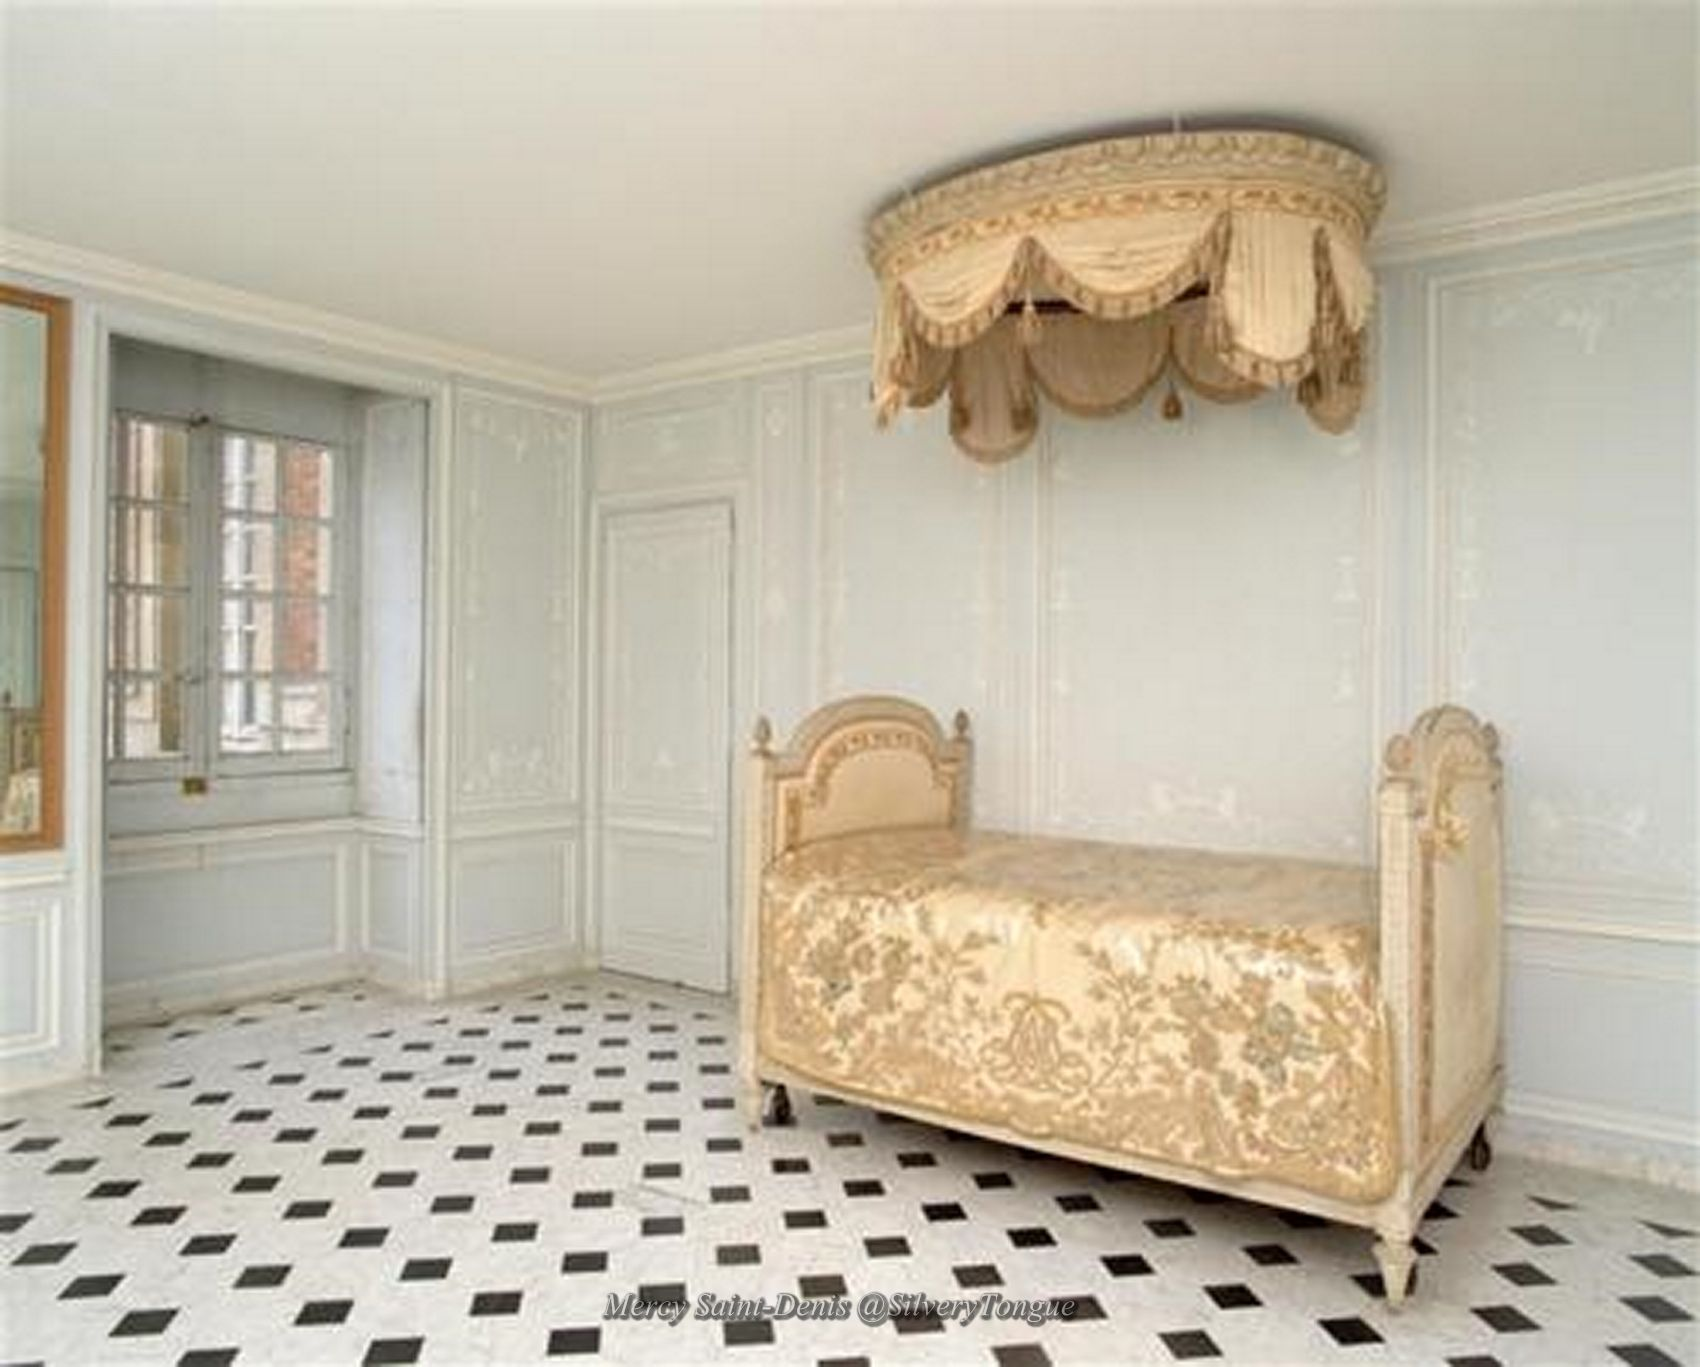 the bathroom apartment of marie antoinette at versailles